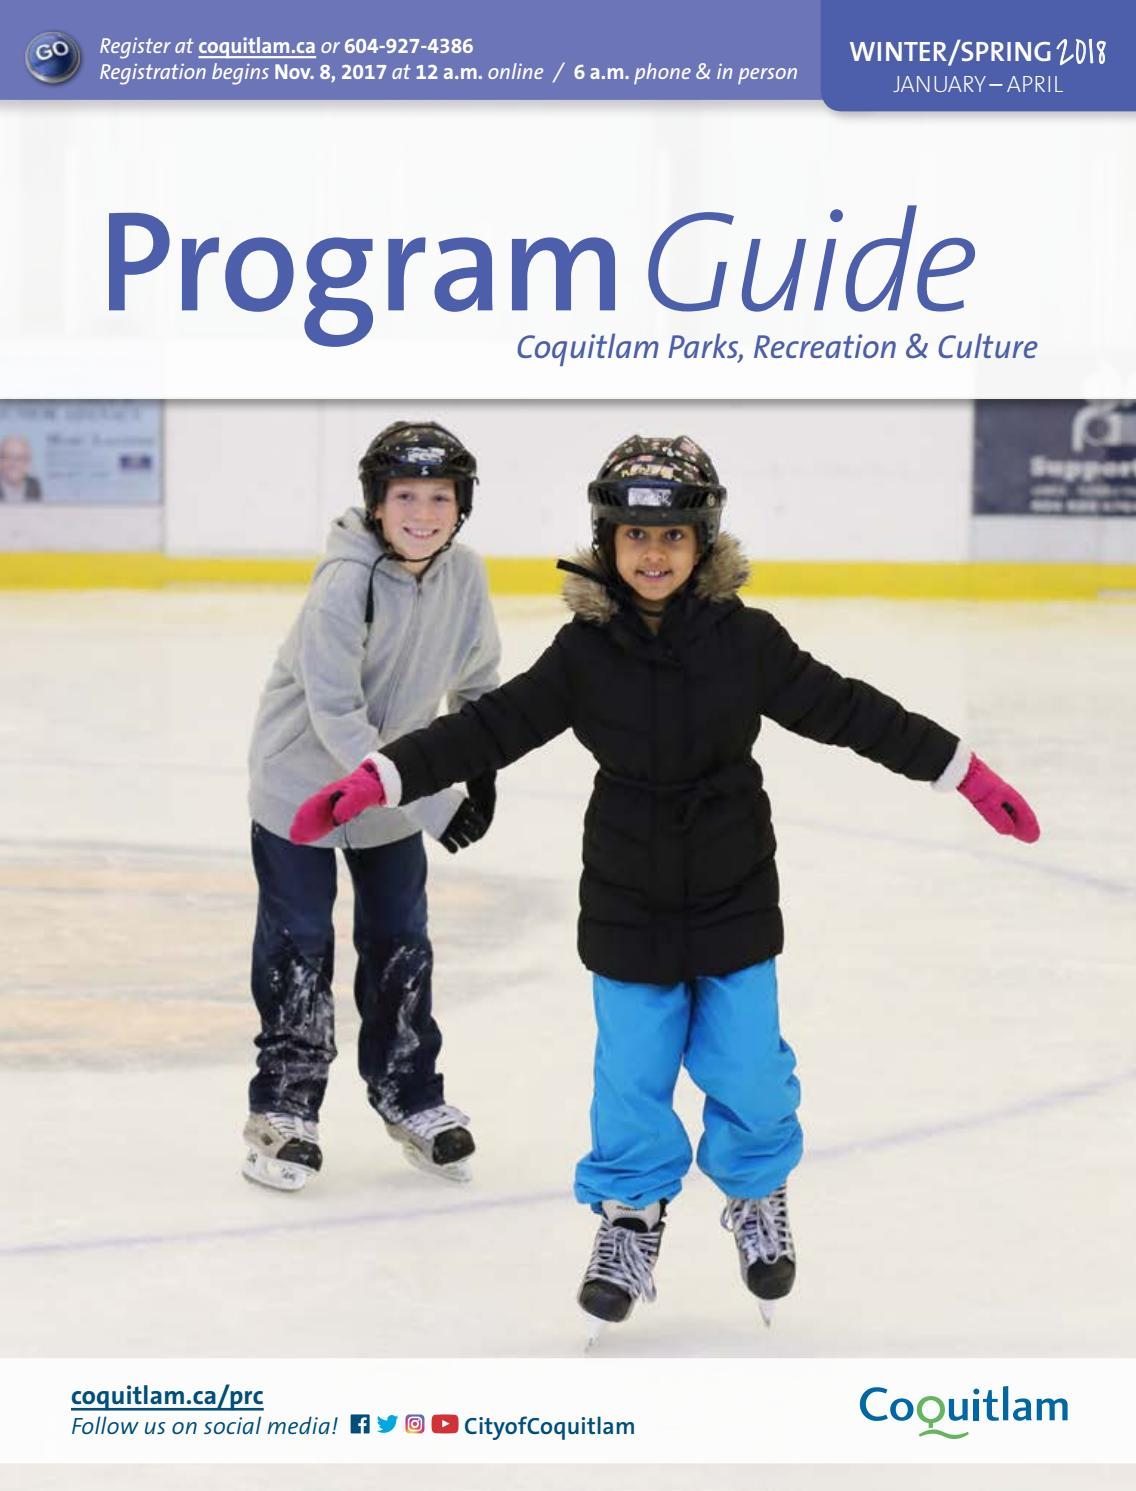 2018 Winter | Spring Program Guide by City of Coquitlam - issuu